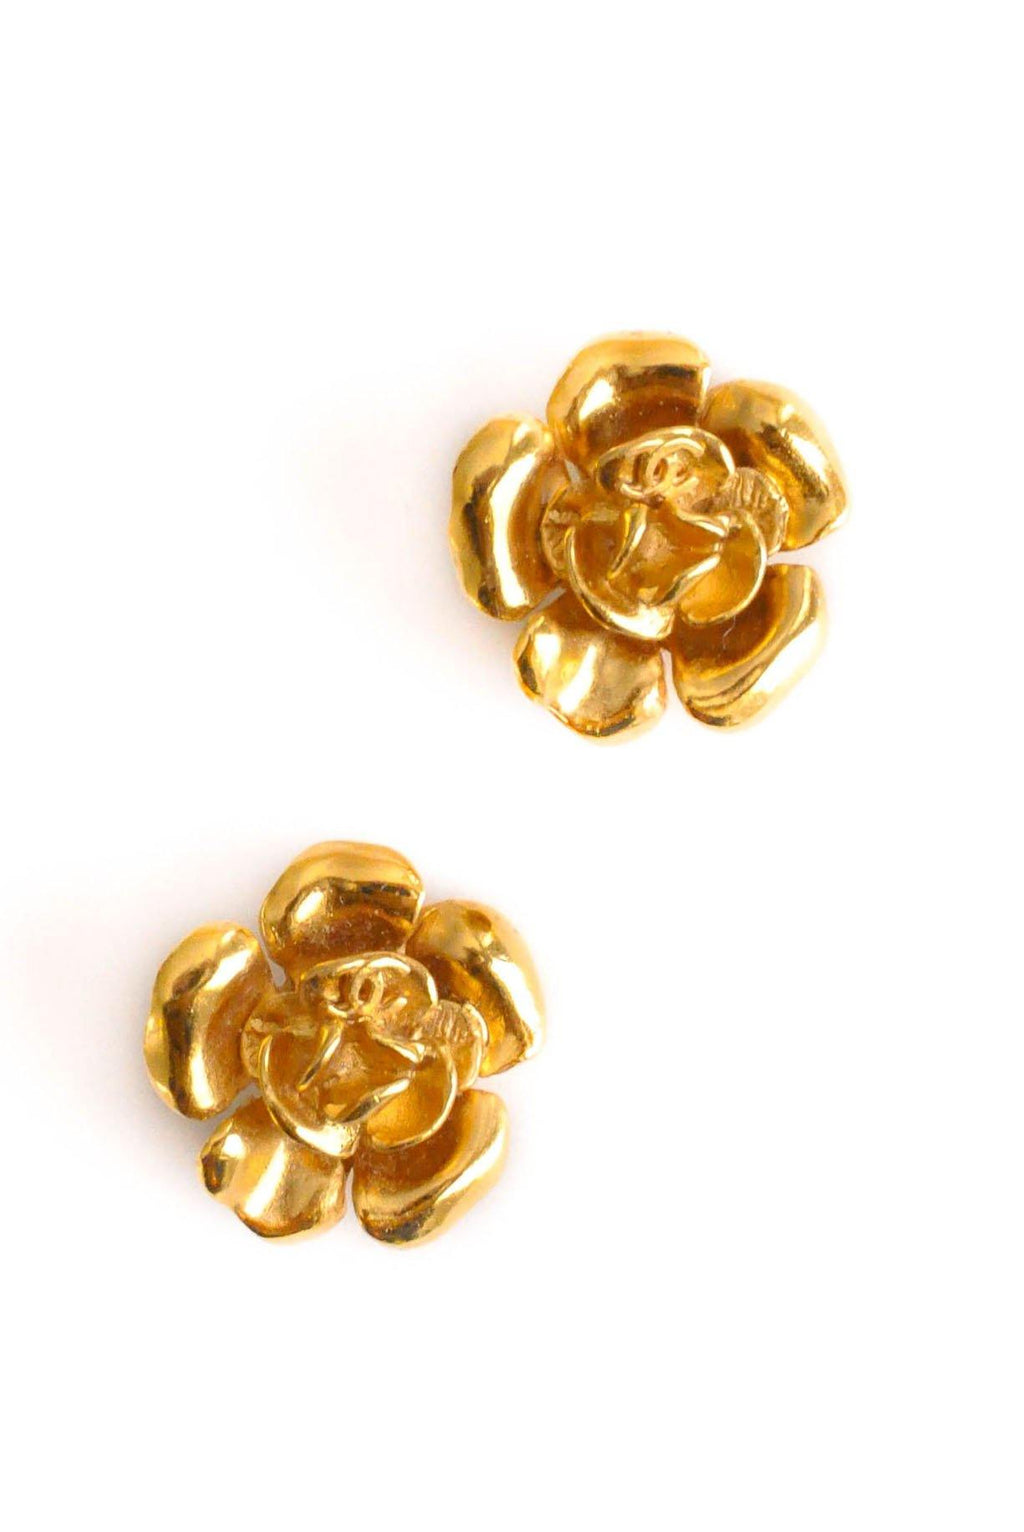 Chanel Floral Clip-on Earrings